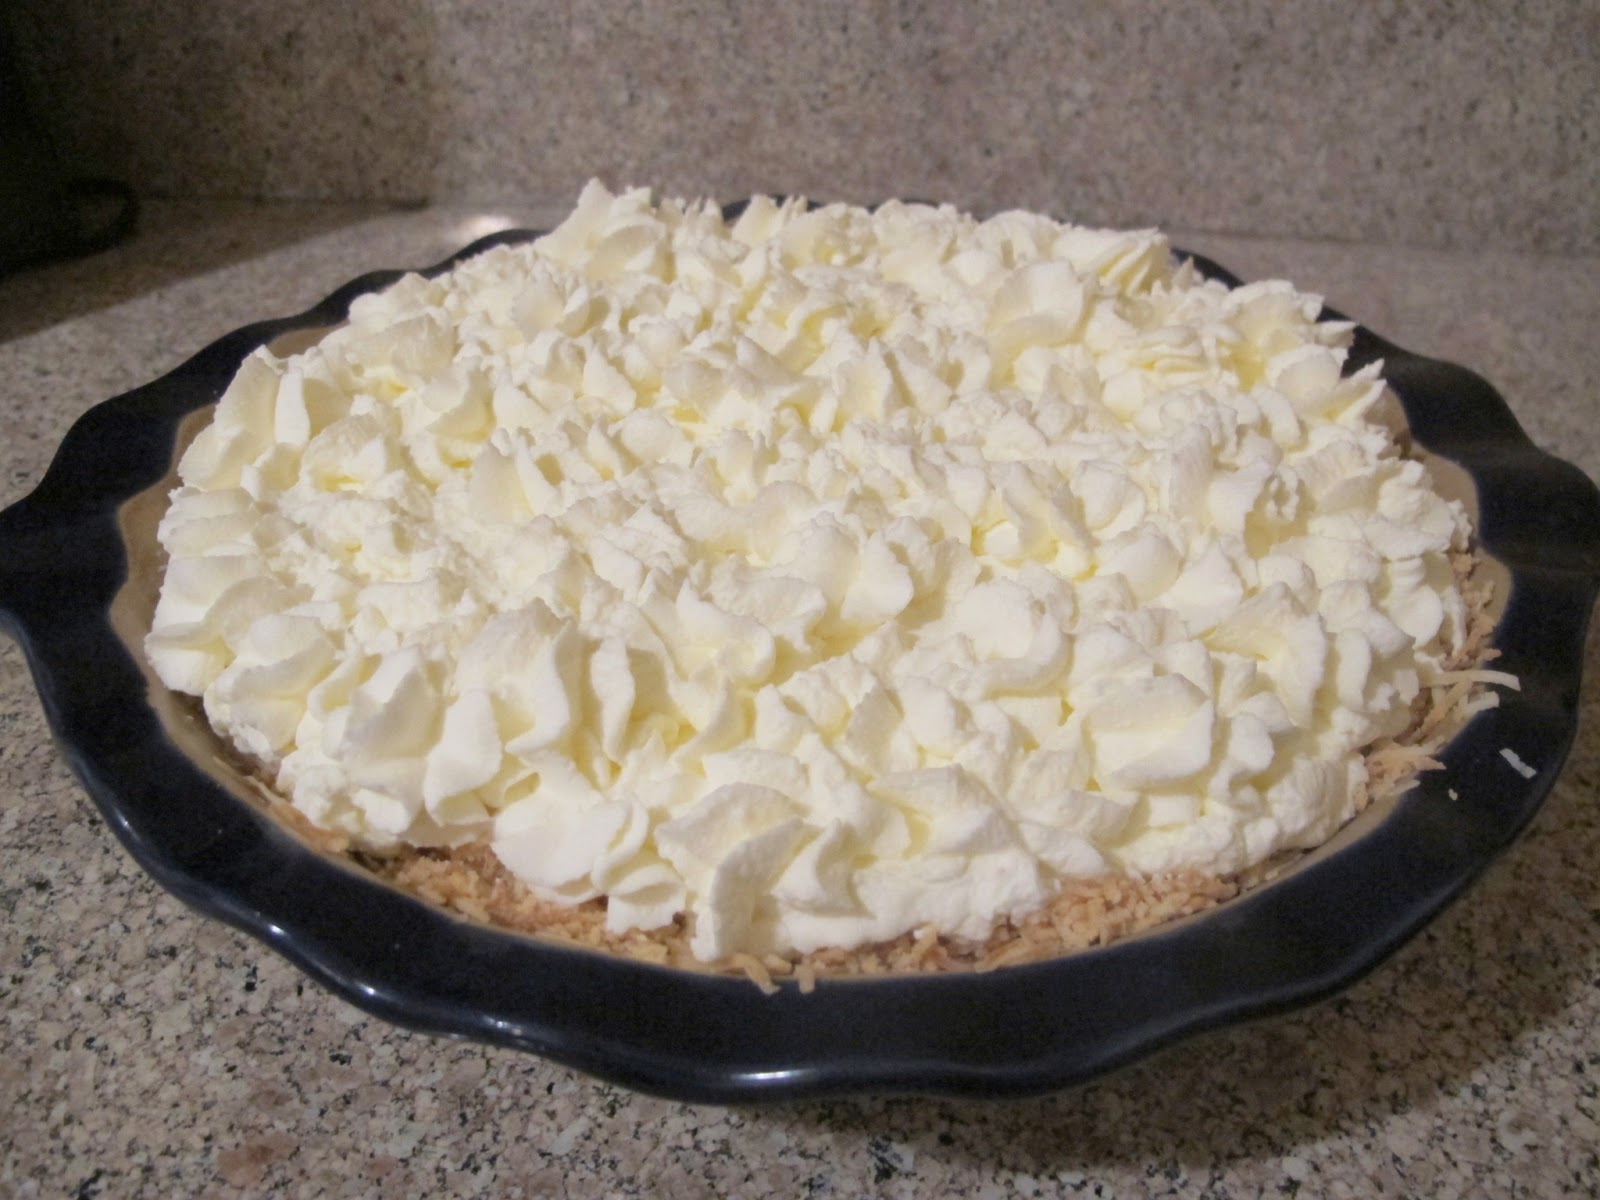 Munchie Musings: Banana Coconut Cream Pie (gluten free)